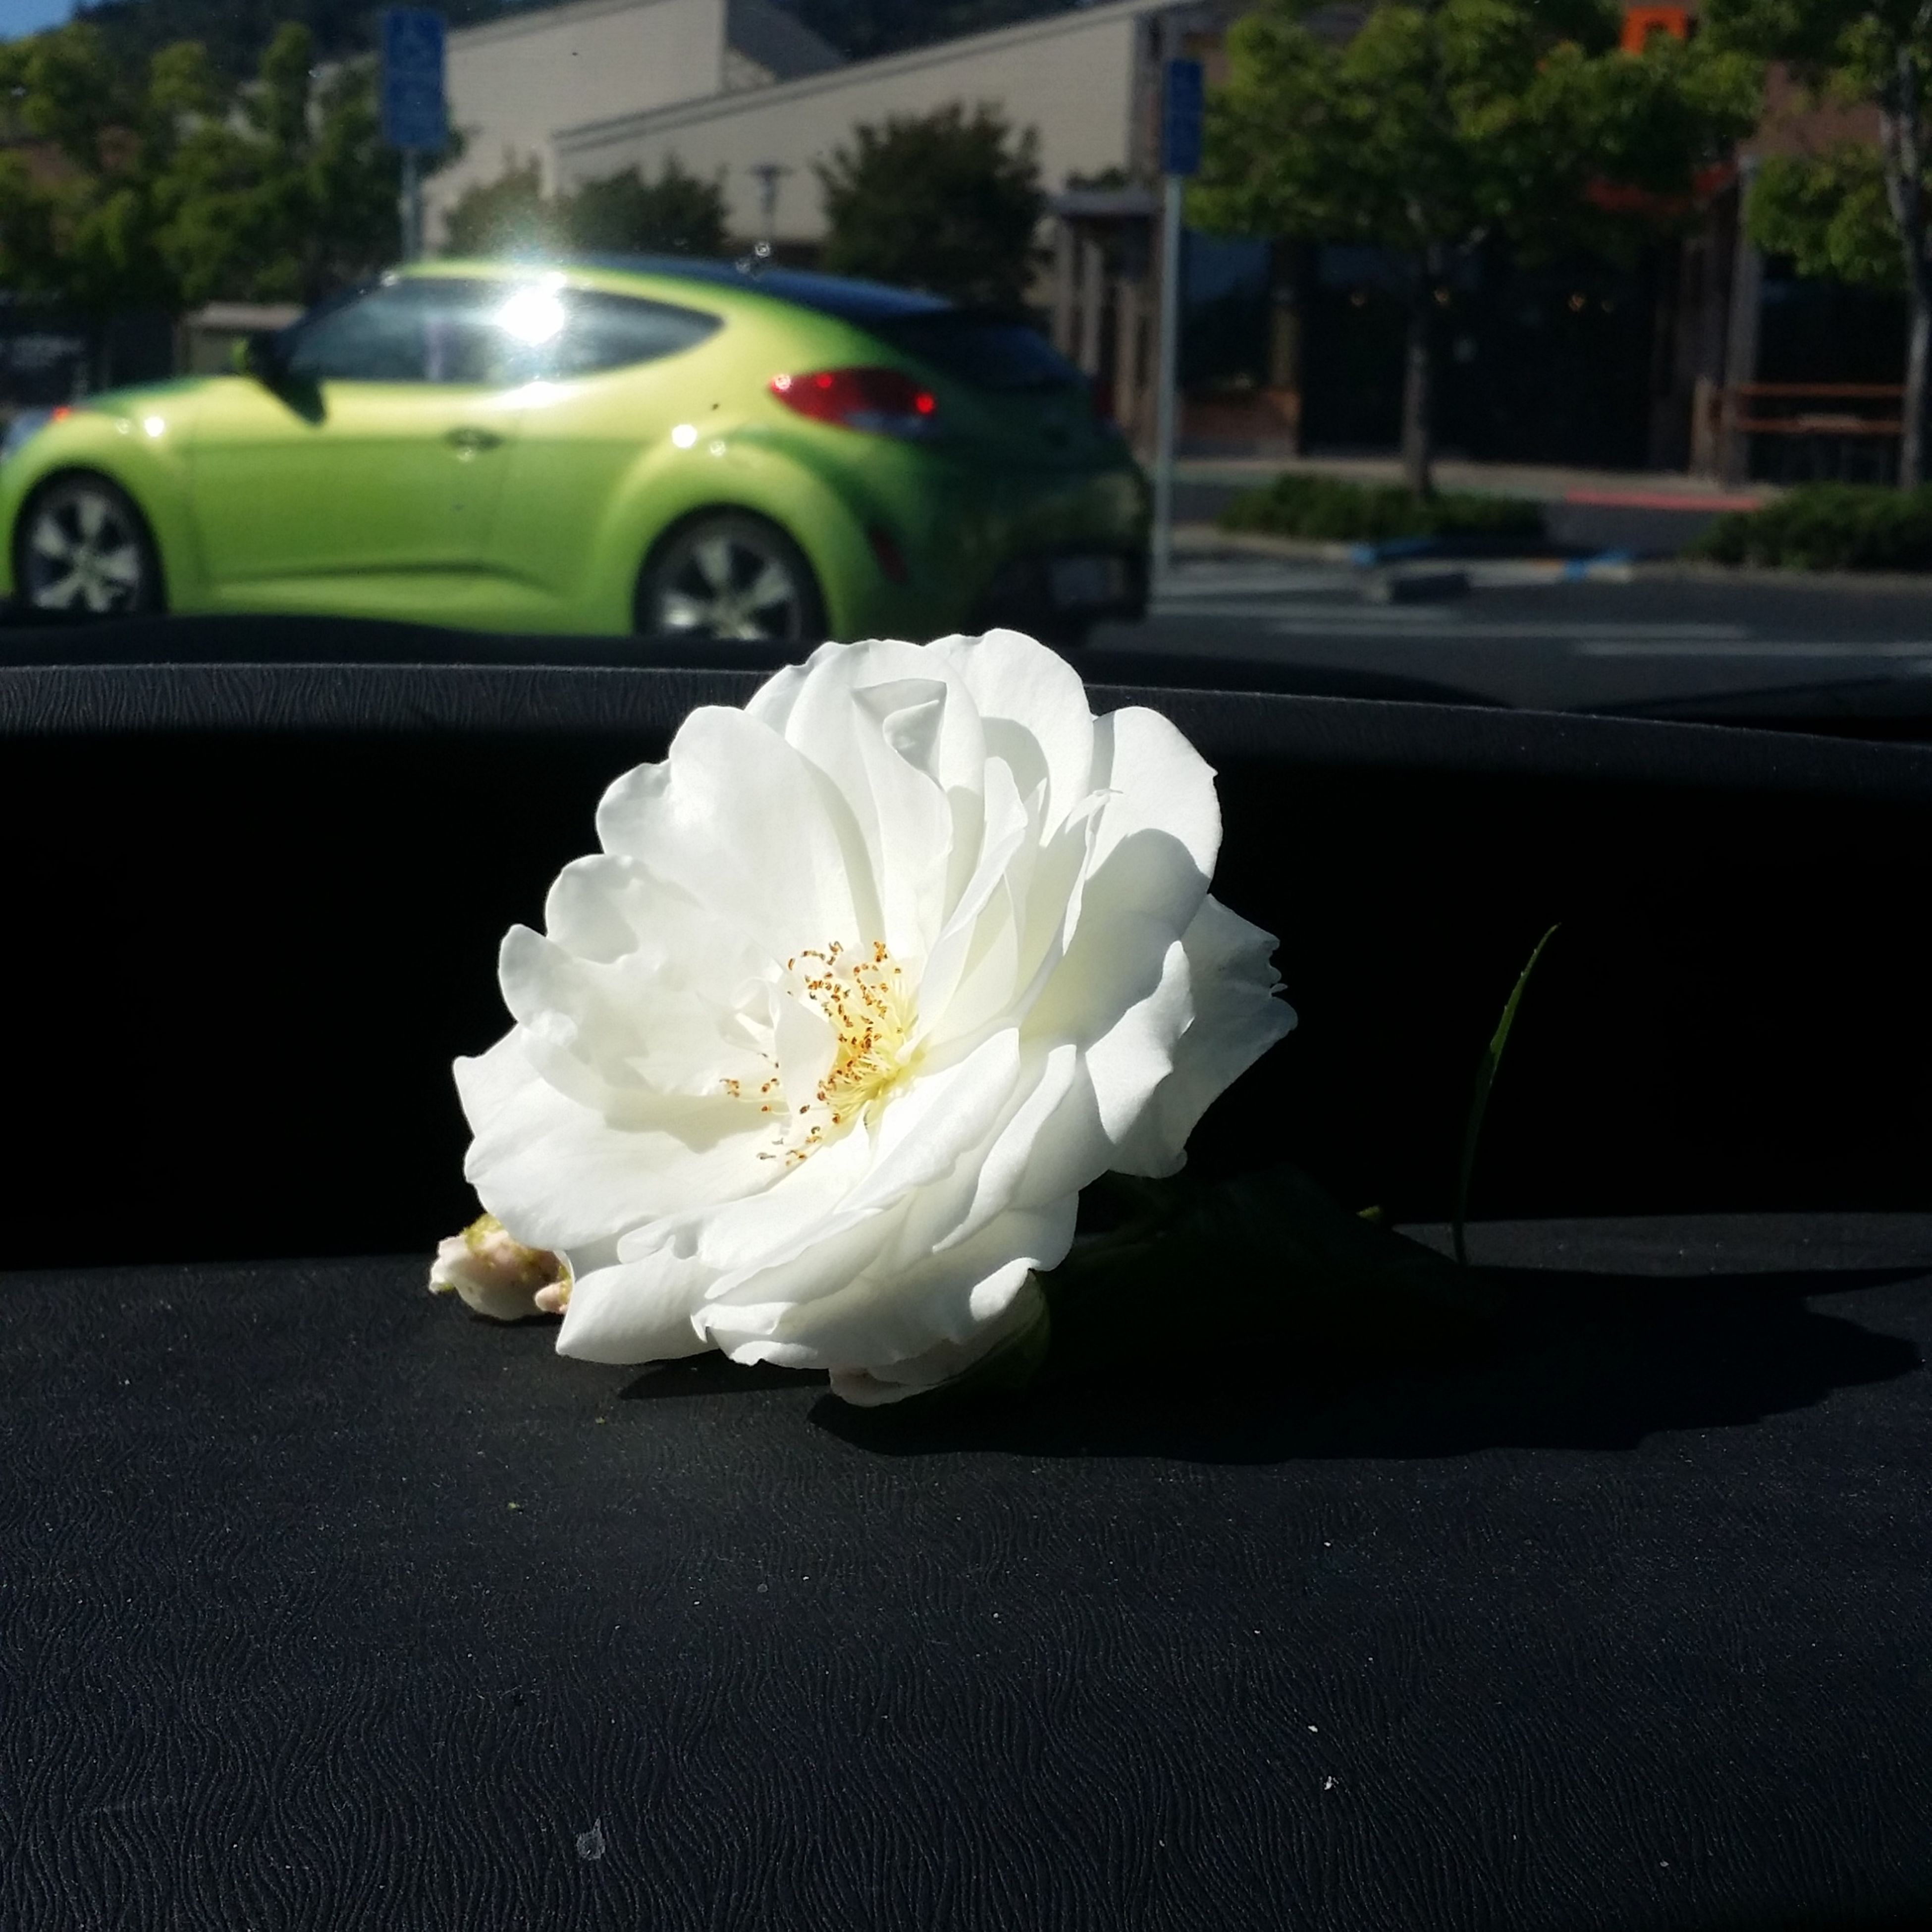 flower, transportation, road, freshness, petal, land vehicle, flower head, car, mode of transport, street, close-up, white color, fragility, single flower, beauty in nature, outdoors, nature, no people, city life